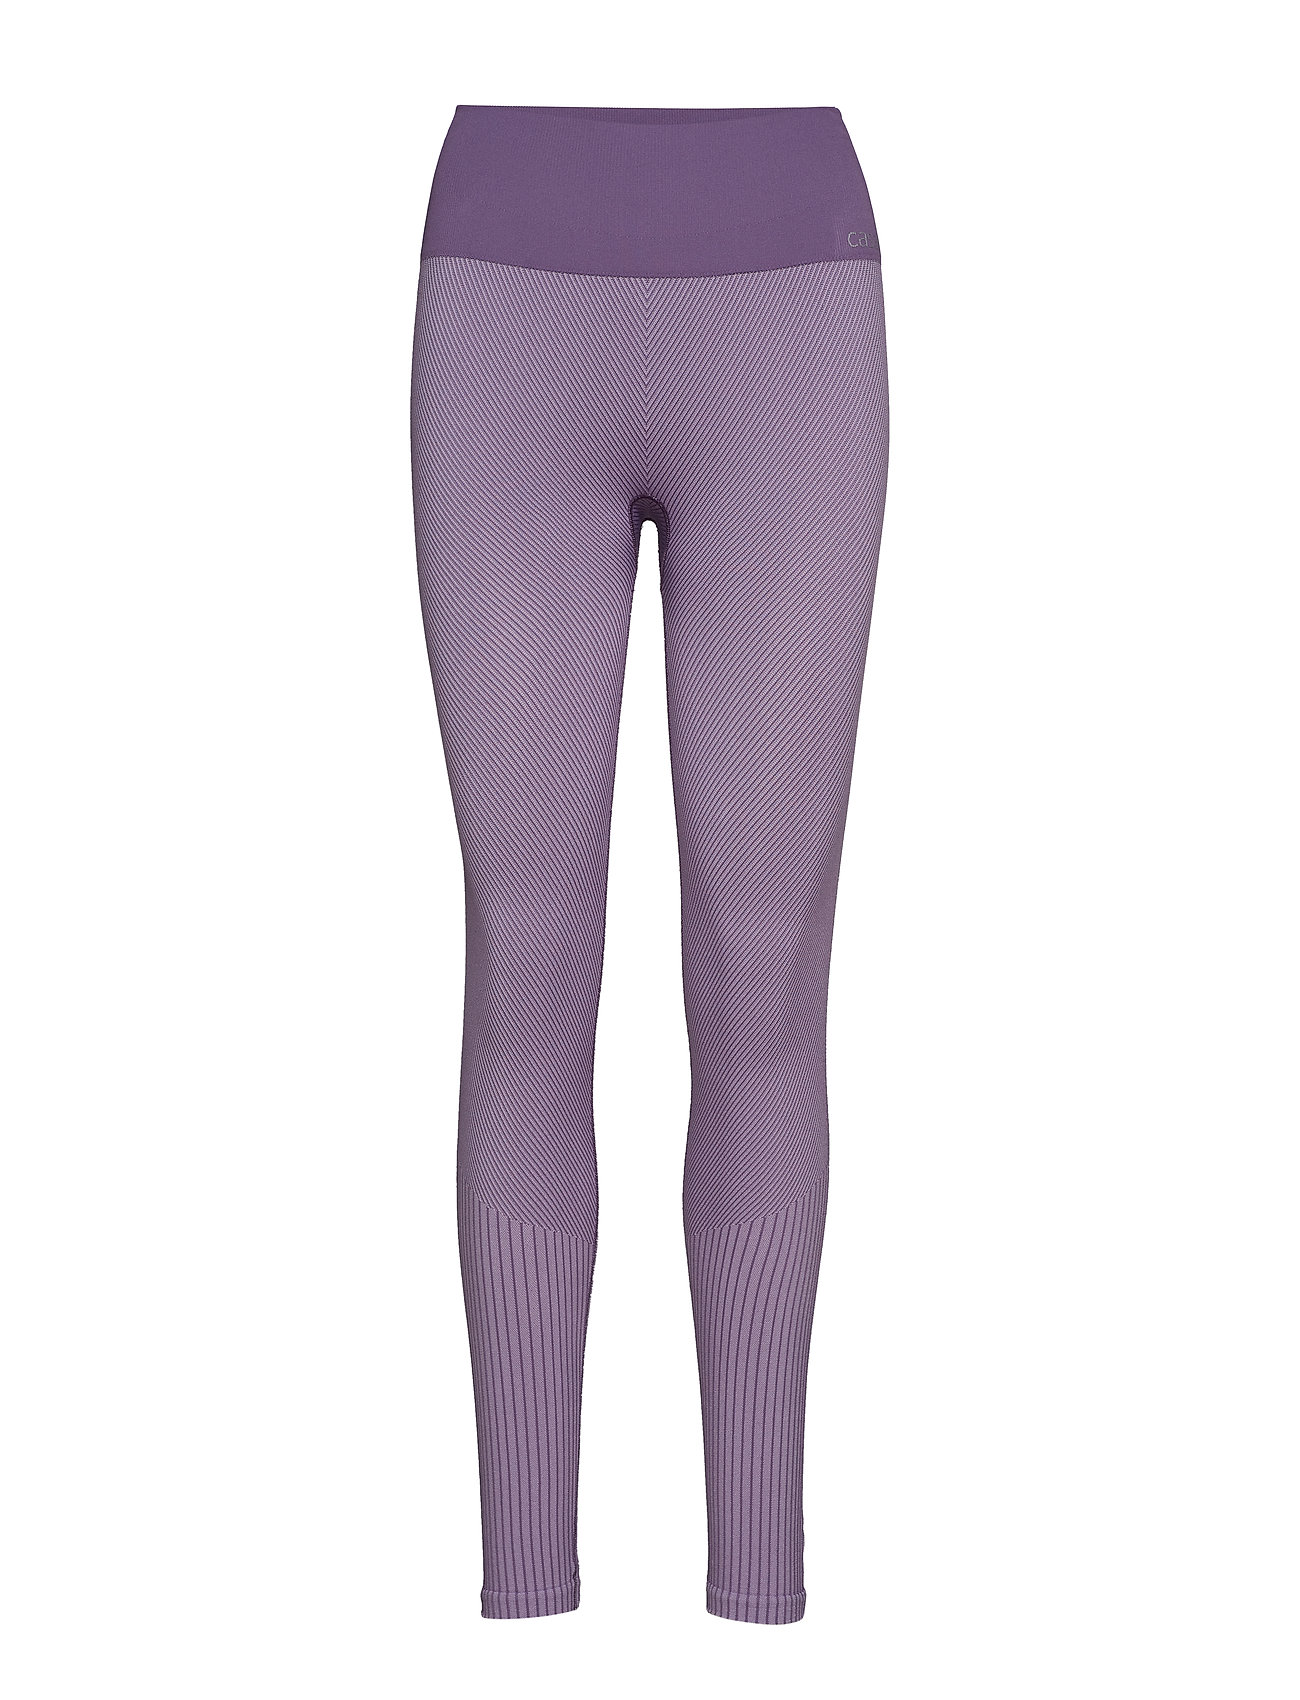 Casall Seamless tights - LAVENDER SPA